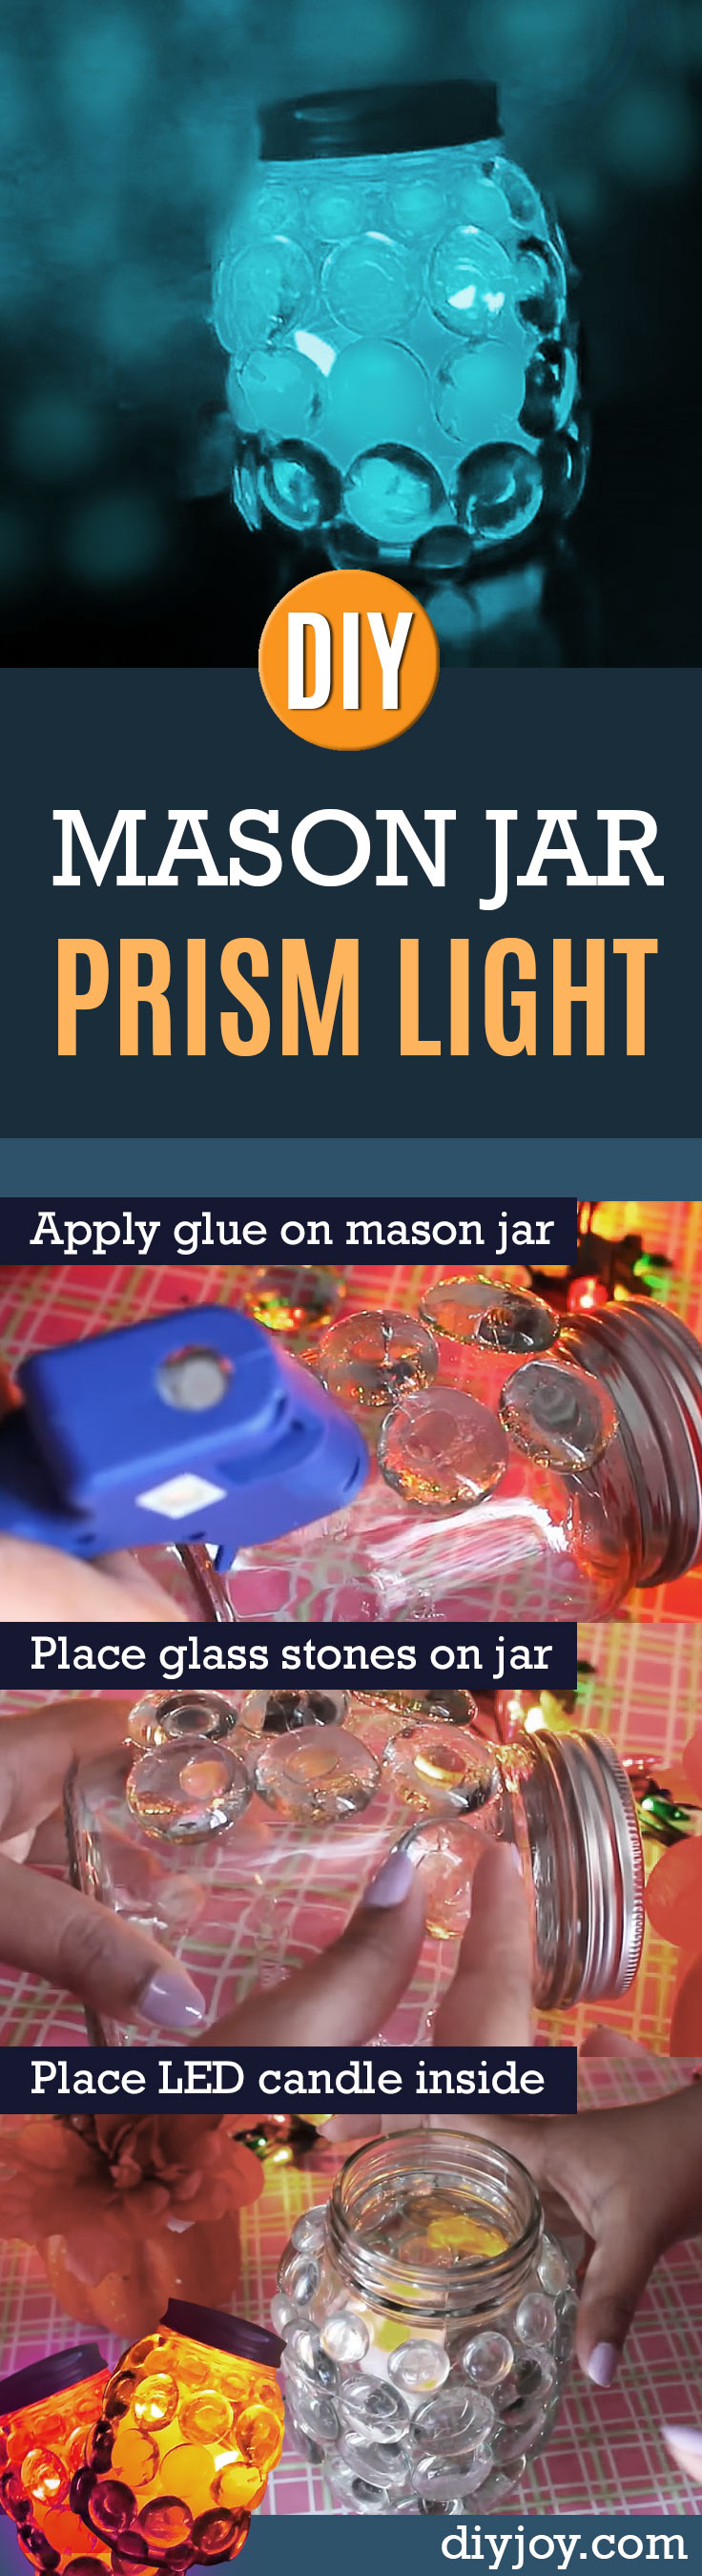 Mason Jar Lights - DIY Mason Jar Prism Light | Cool and Easy DIY Decor Ideas on A Budget - DIY Ideas with Mason Jars for Outdoor, Kitchen, Bathroom, Bedroom and Home, Wedding. How to Make Hanging Lanterns, Rustic Chandeliers and Pendants, Solar Lights for Outside